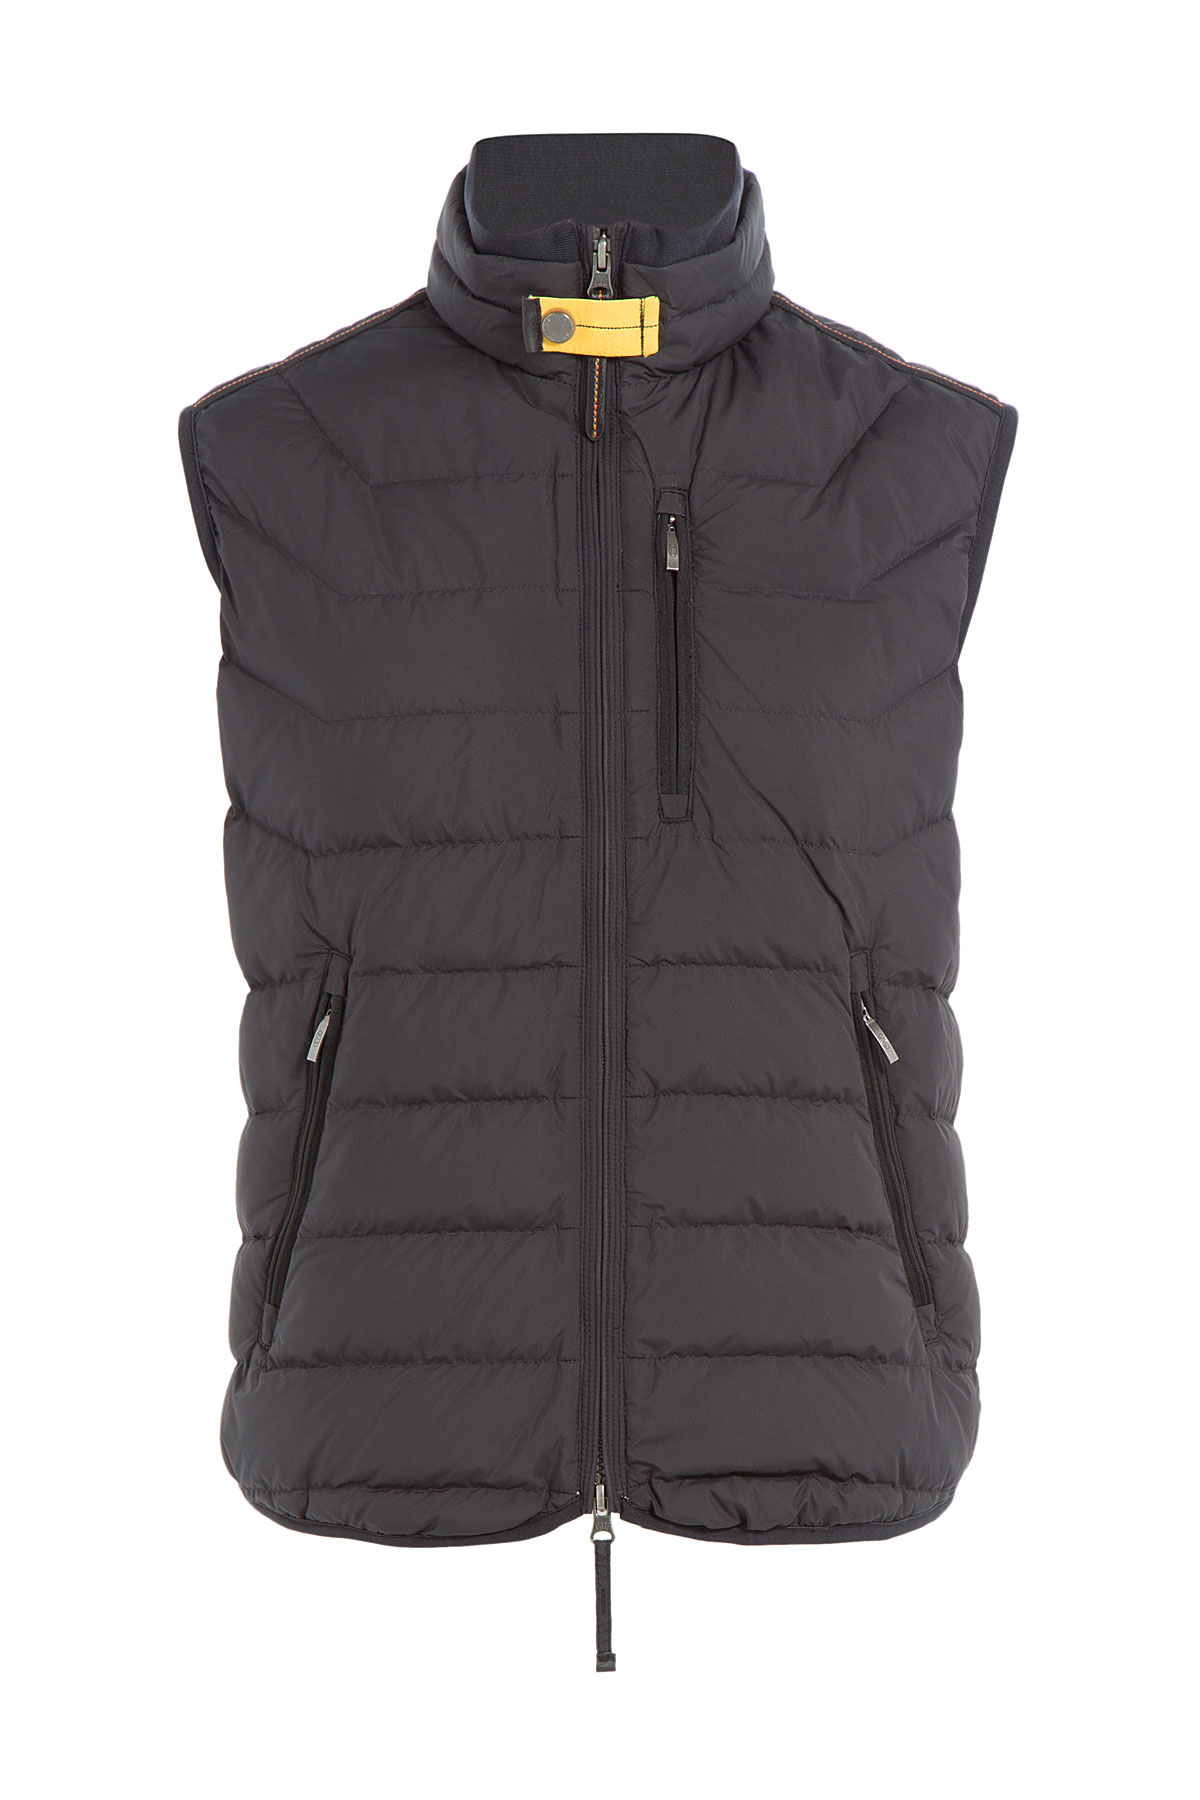 Find black down vest at ShopStyle. Shop the latest collection of black down vest from the most popular stores - all in one place.